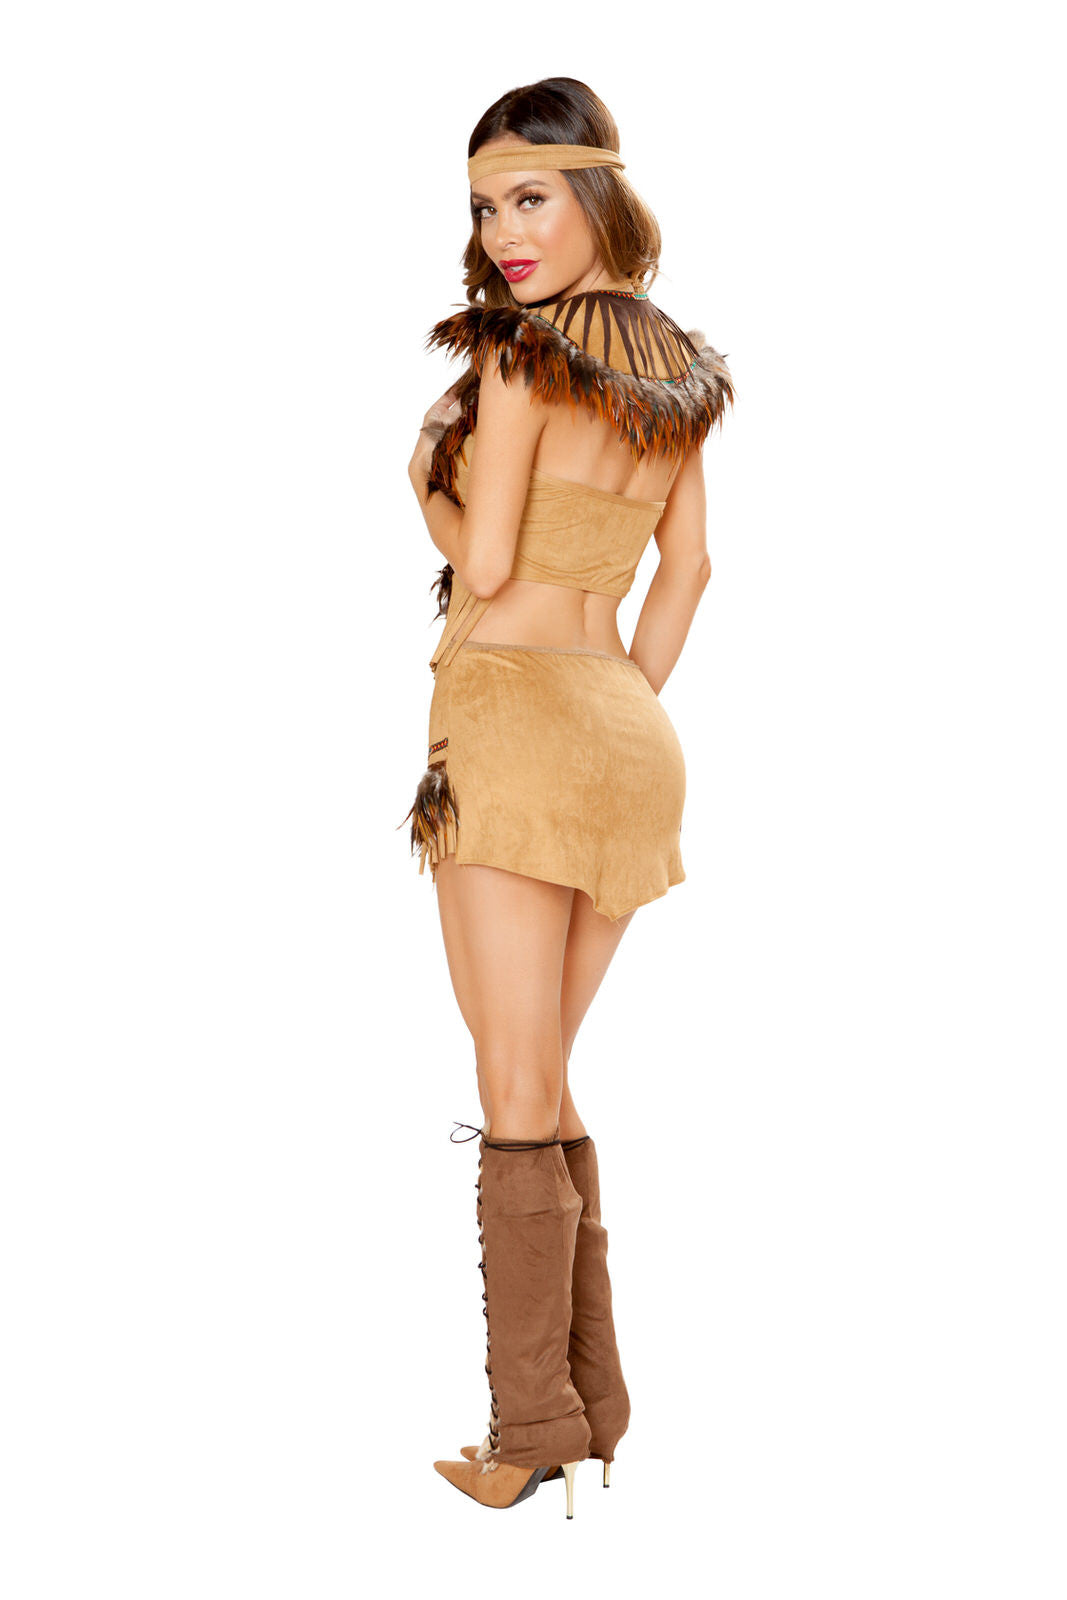 10117 - 3pc Cherokee Inspired Hottie ${description} | Roma Costume and Roma Confidential wholesale manufacturer of Women Apparel bulk world wide wholesale and world wide drop ship services for Adult Halloween Costumes, Sexy and Elegant Lingerie, Rave Clothing, Club wear, and Christmas Costumes. Costumes, Roma Costume, Inc., Roma Costume, Roma Confidential, Wholesale clothing, drop ship, drop ship service, Wholesale Lingerie, Wholesale Adult Halloween Costumes, Rave Clothing, EDM Clothing, Festival Wear, Christmas Costumes, Clubwear, Club wear.